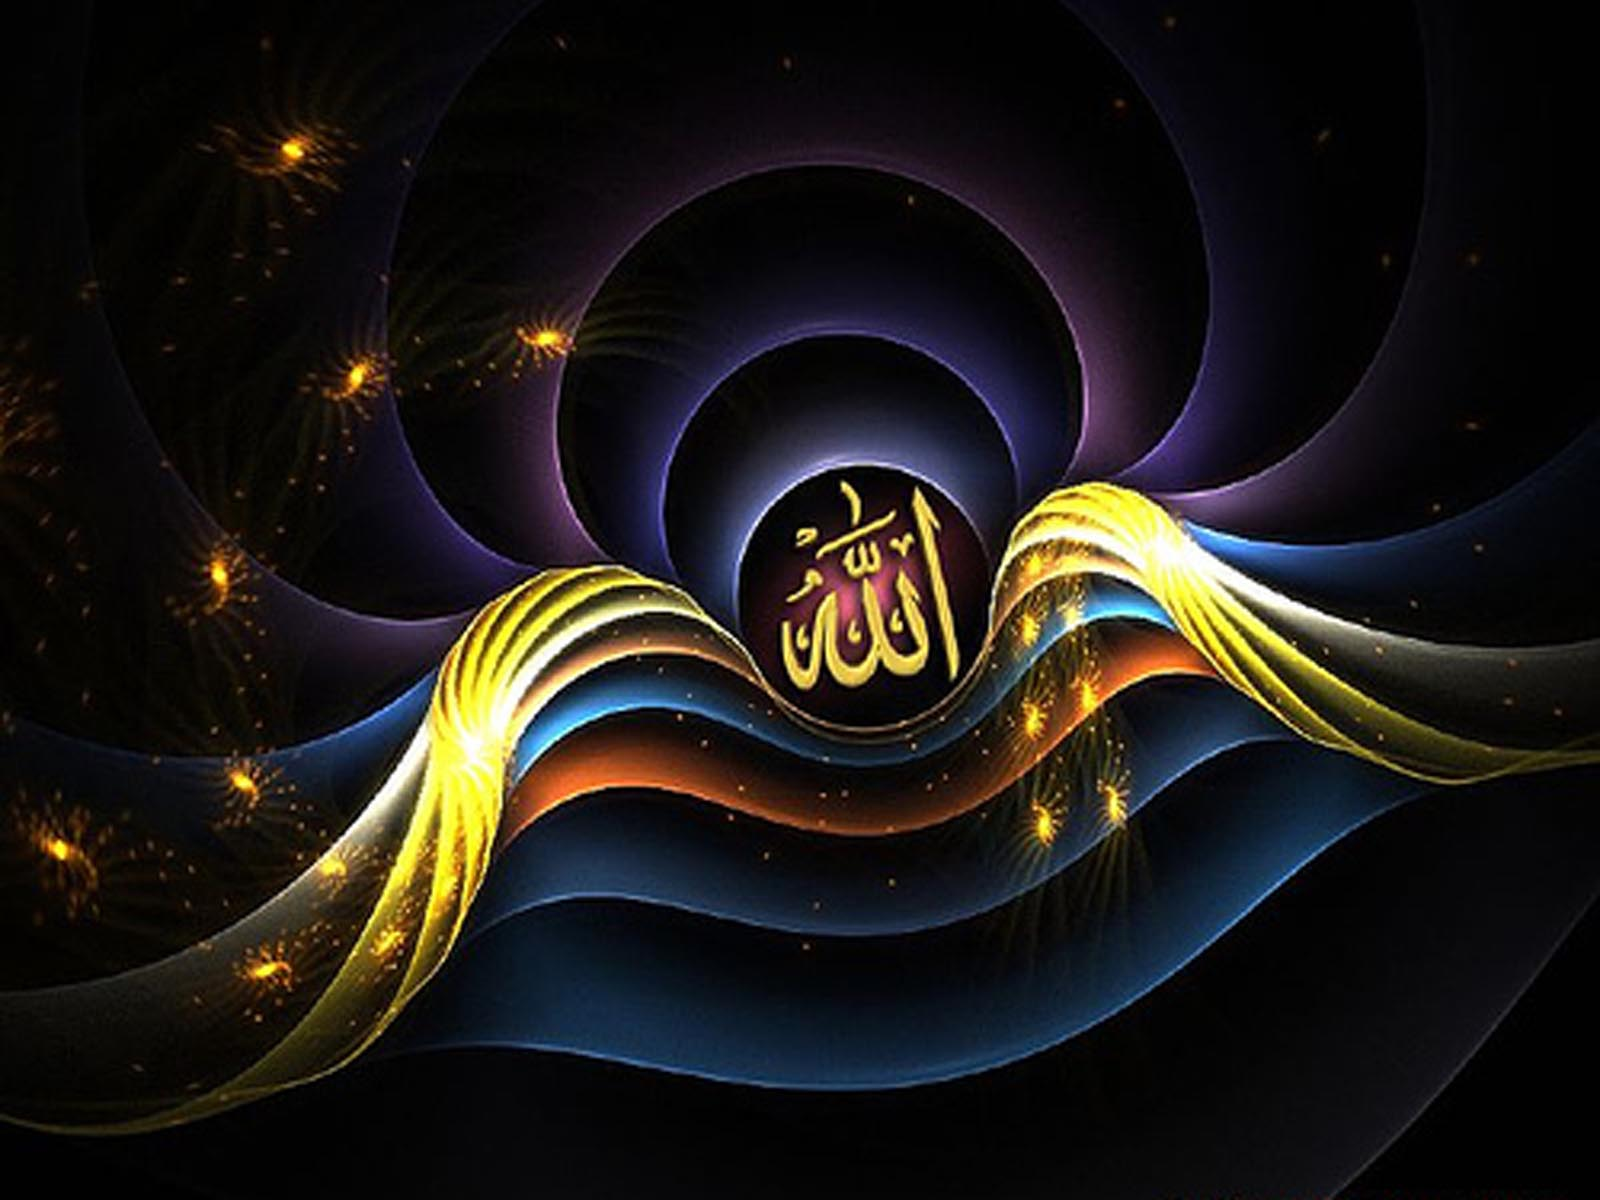 My Name 3d Wallpapers: Islamic Wallpapers: ALLAHalll Name Wallpapers